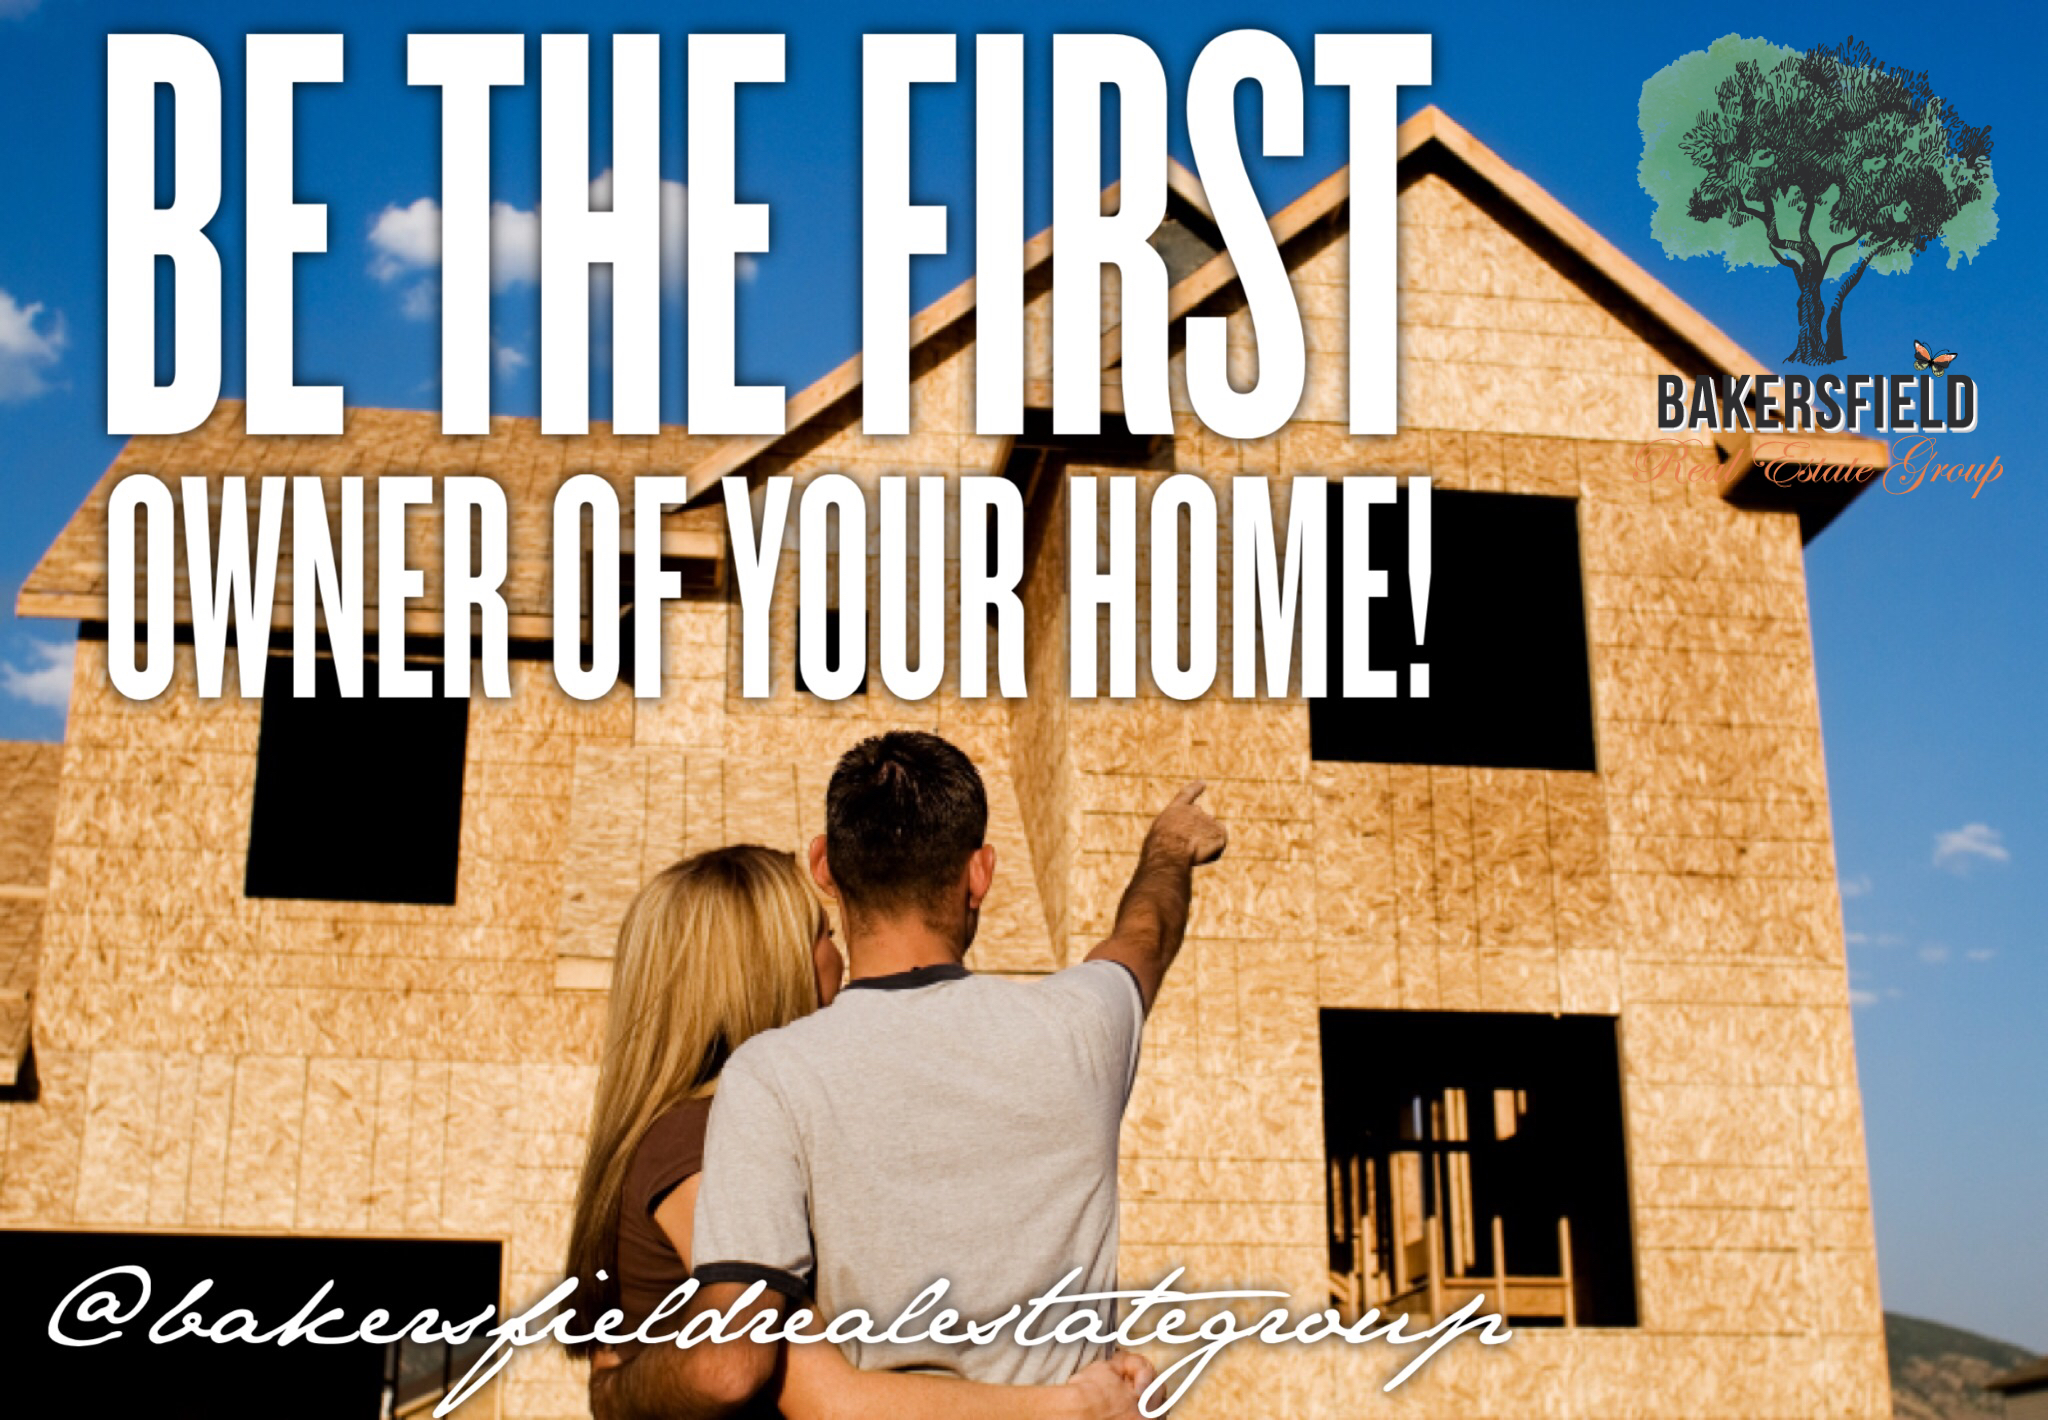 New Construction Homes in Bakersfield - Bakersfield Real Estate Group 661.368.3770